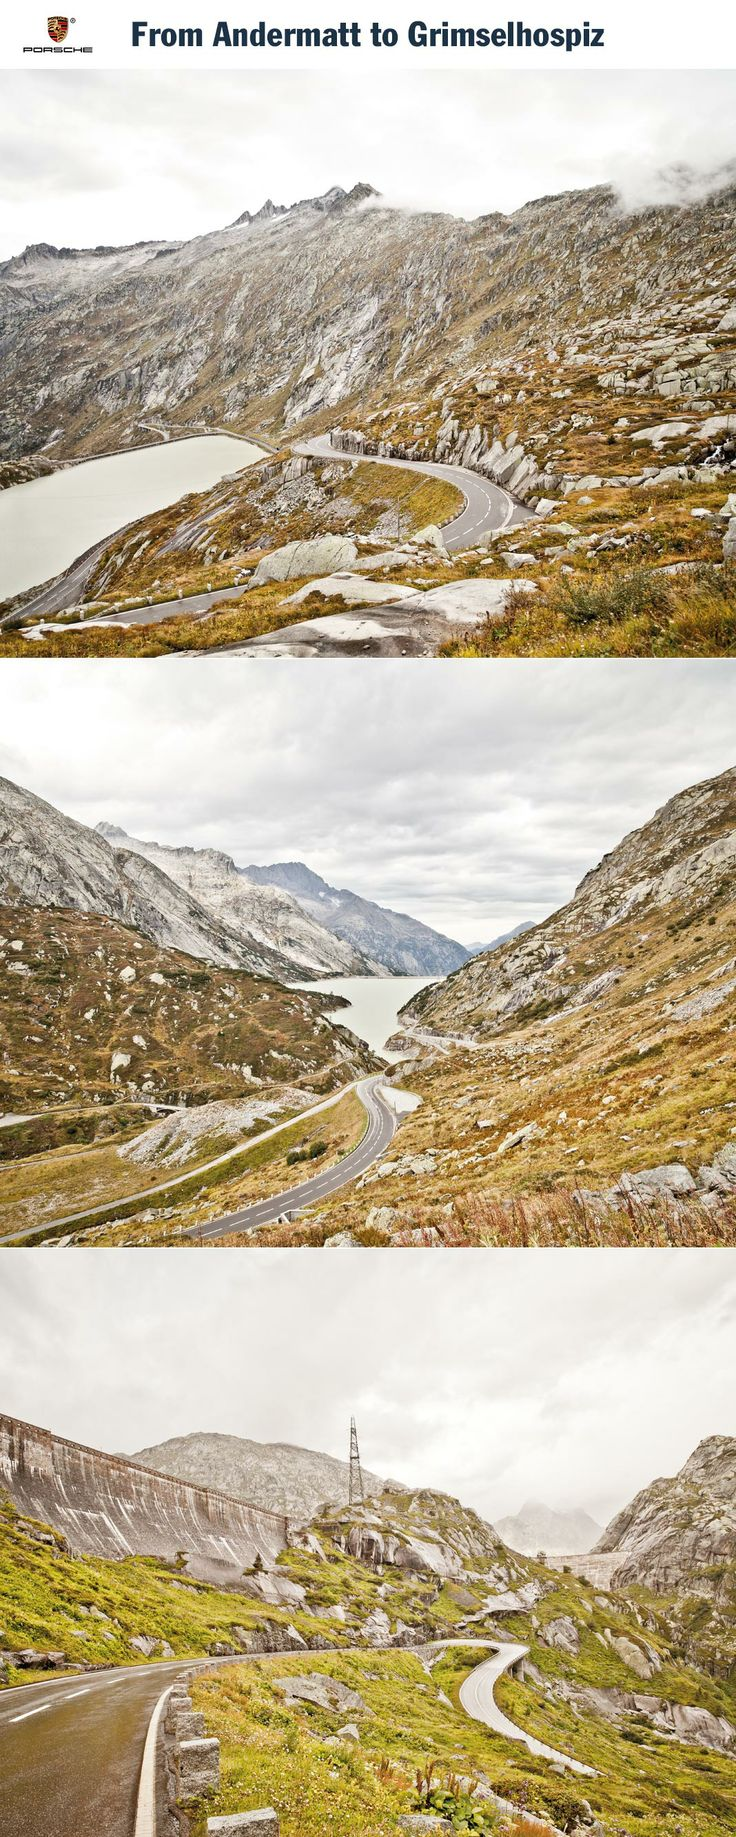 From Andermatt to Grimselhospiz, Switzerland. Those who go to Switzerland looking only for peace and quiet are missing out on something: goose bumps and an adrenaline rush. Start: Andermatt. Destination: Grimselhospiz. Driving time: Approx. 3.5 hours. Distance: Approx. 192 km (119 miles). Recommended travel time: June - September.   Learn more: http://link.porsche.com/gts/switzerland